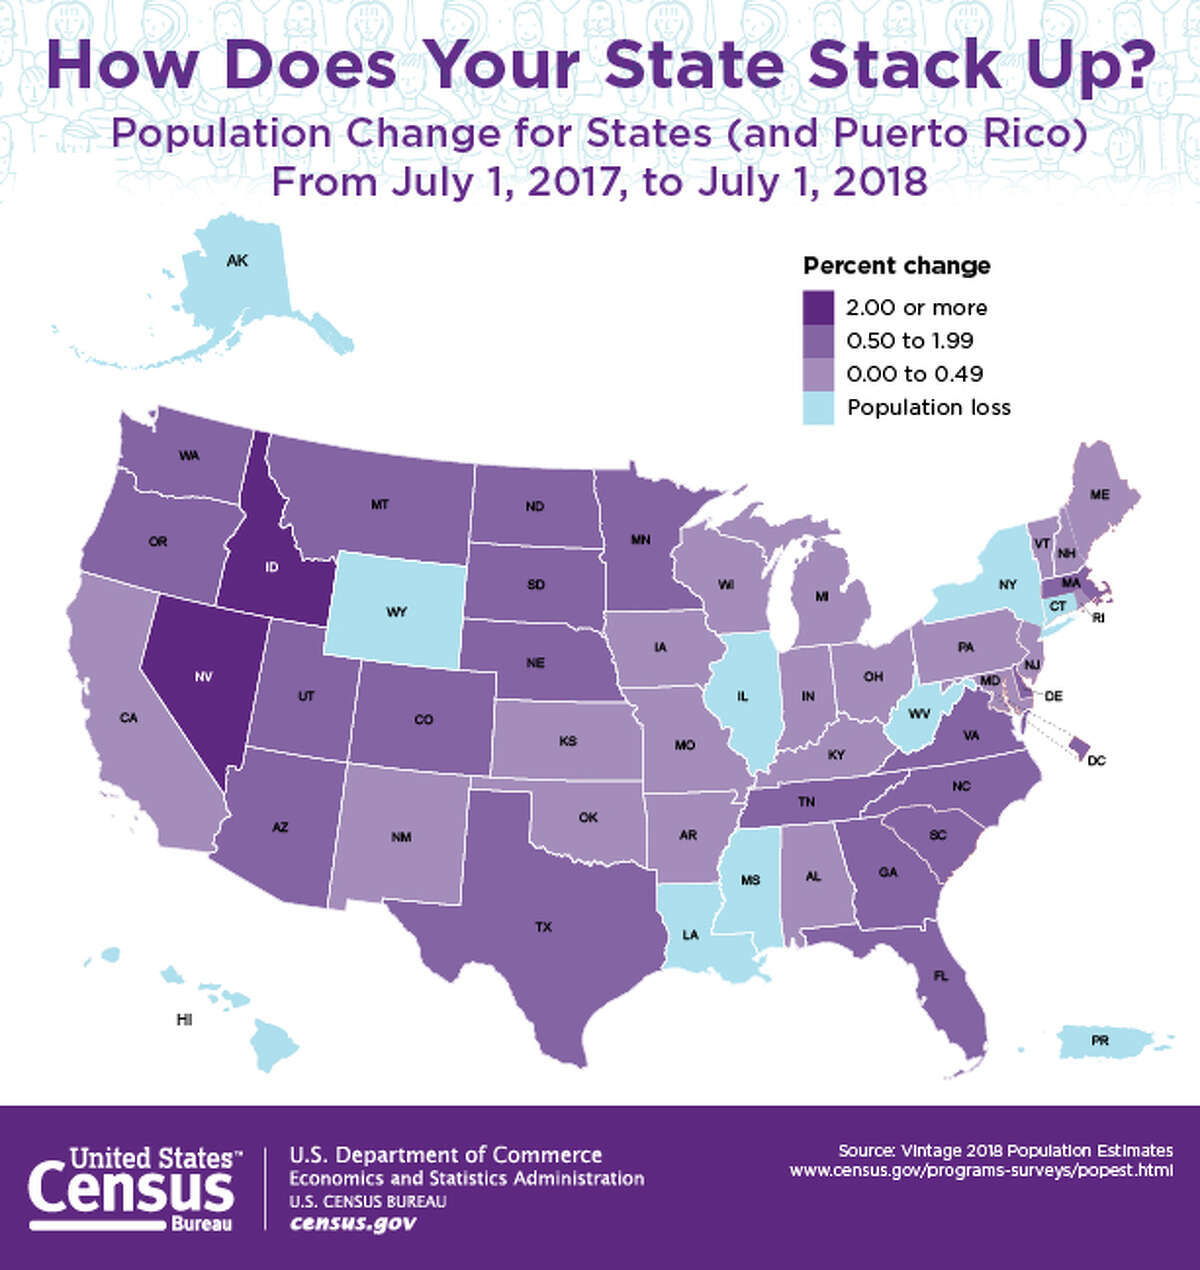 New York is one of nine states that lost population in the past year, based on U.S. Census Bureau estimates for July 2018. (Graphic by U.S. Census Bureau)